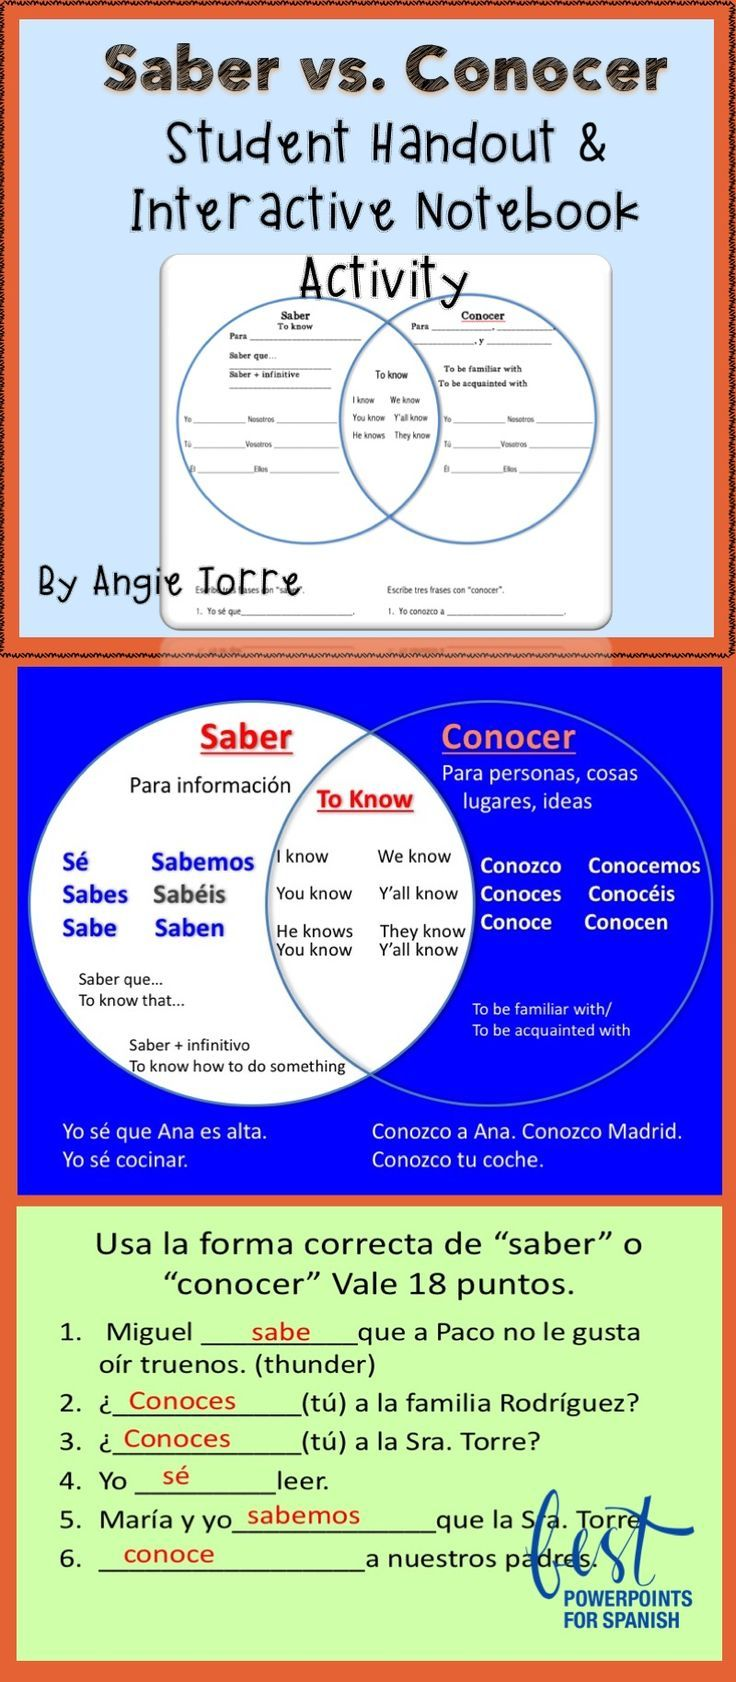 Spanish saber and conocer interactive notebook activity and student spanish saber and conocer interactive notebook activity and student handout ccuart Image collections